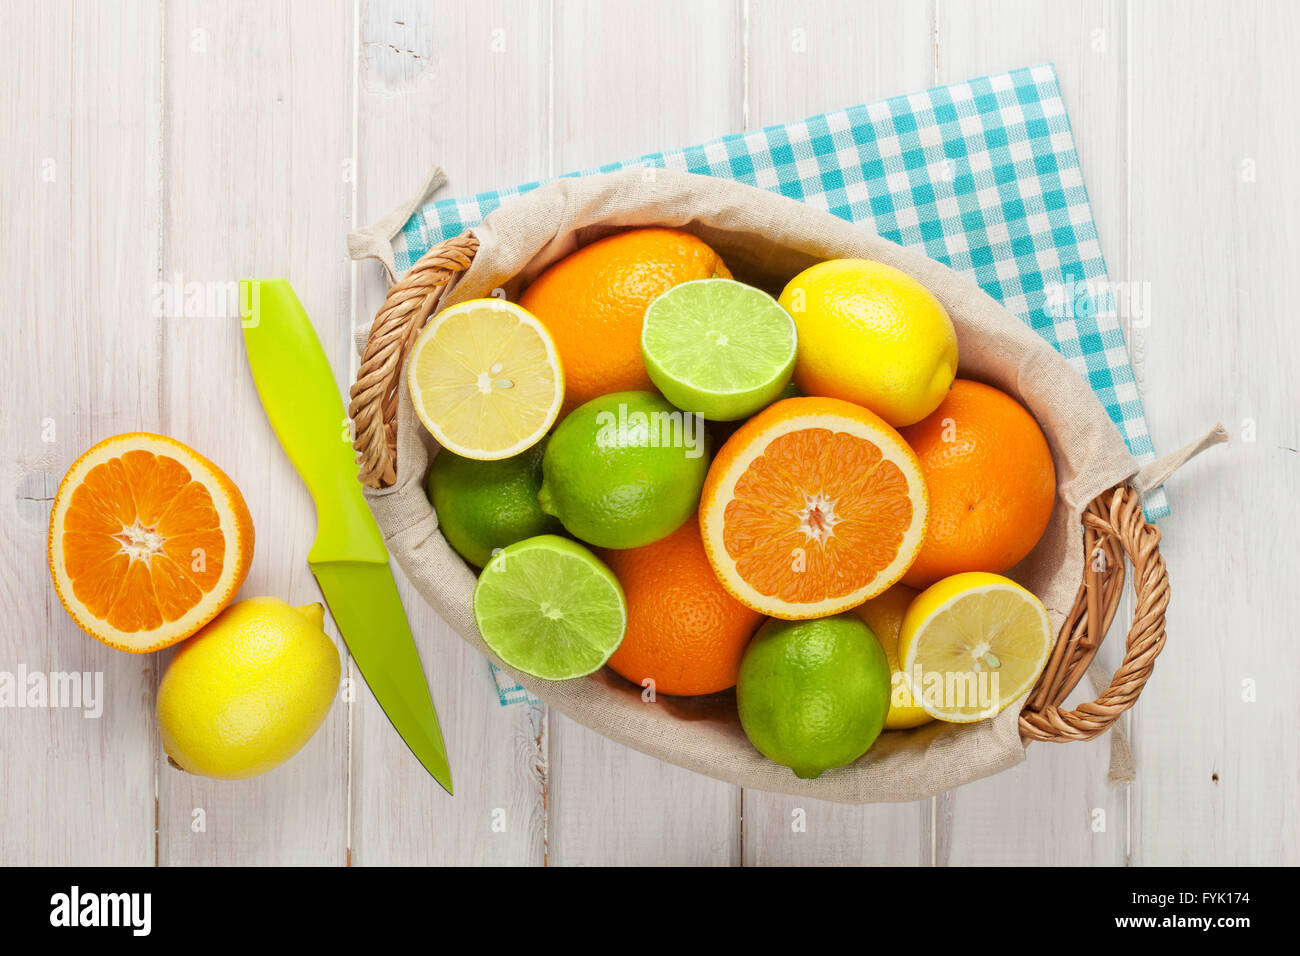 Citrus fruits in basket. Oranges, limes and lemons. Over white wood table background - Stock Image